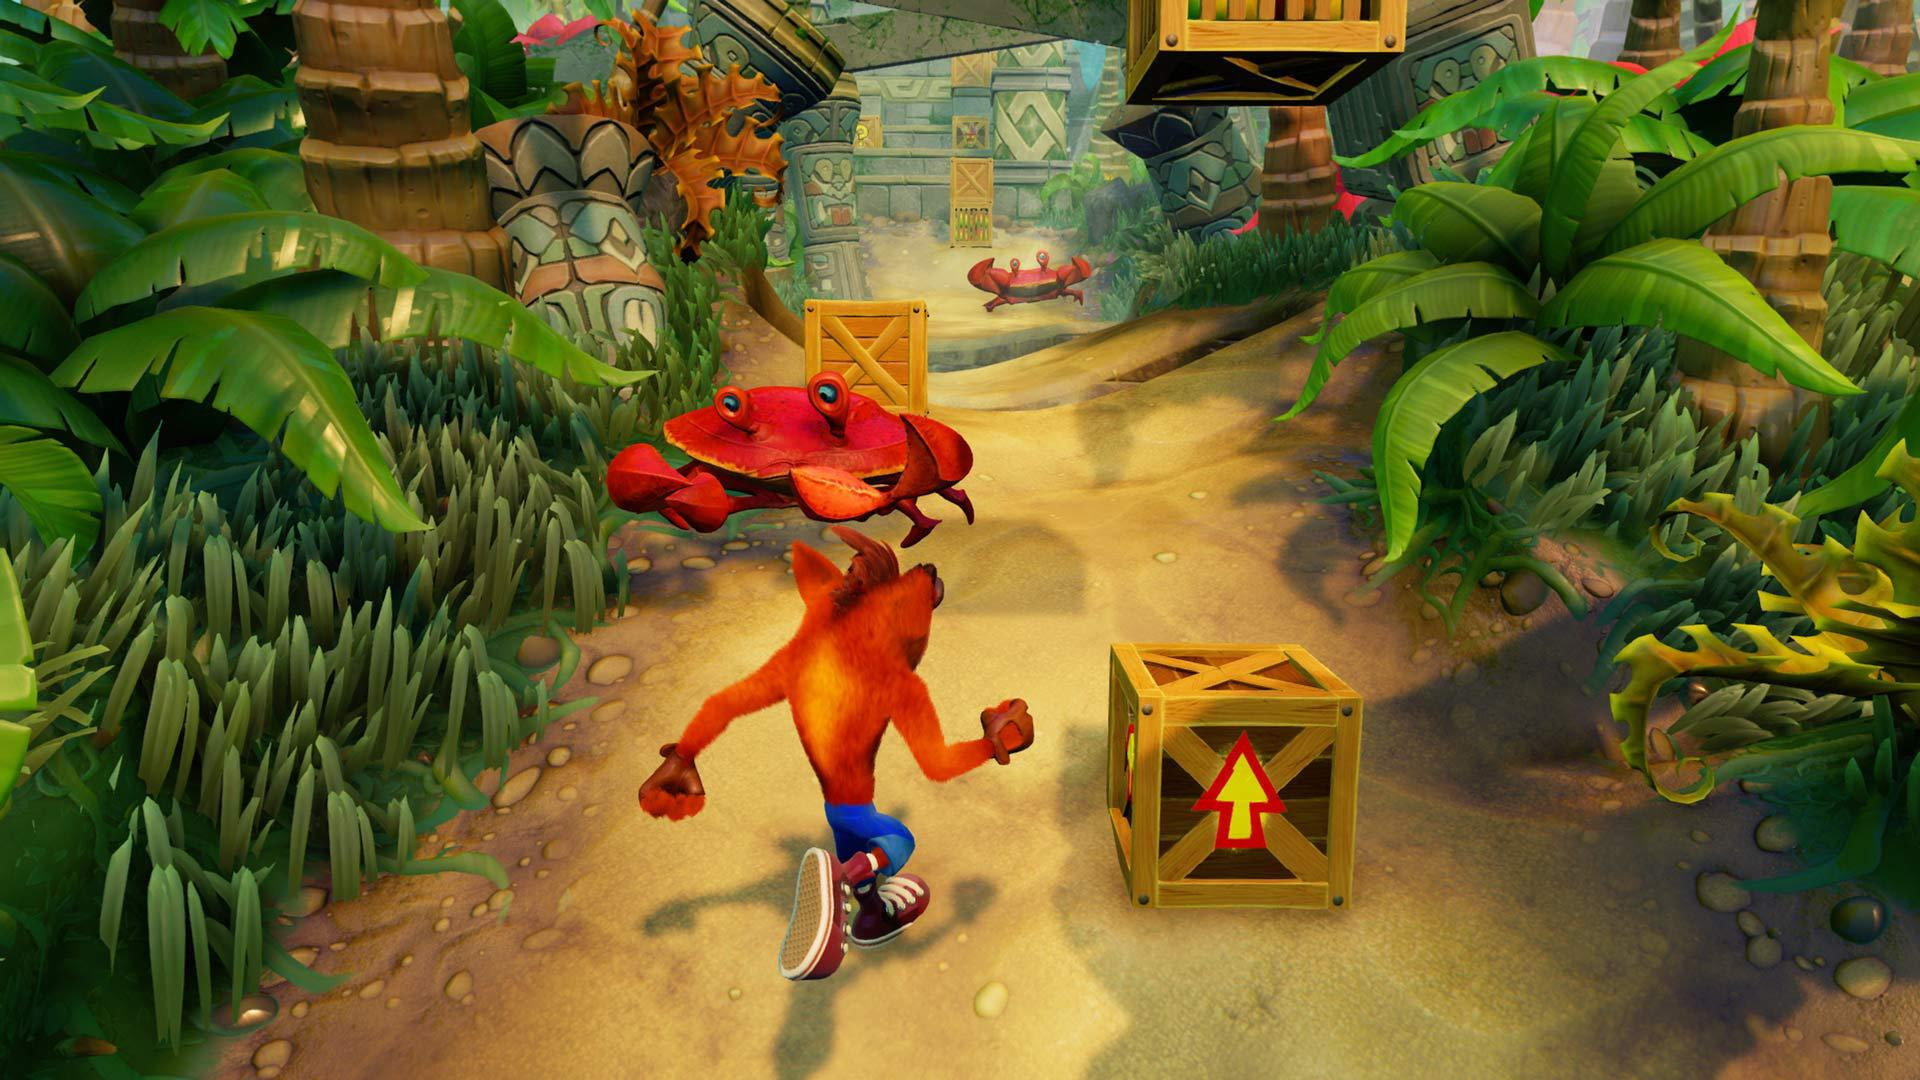 Crash got a remaster earlier in the year but it exposed some brutal gameplay choices